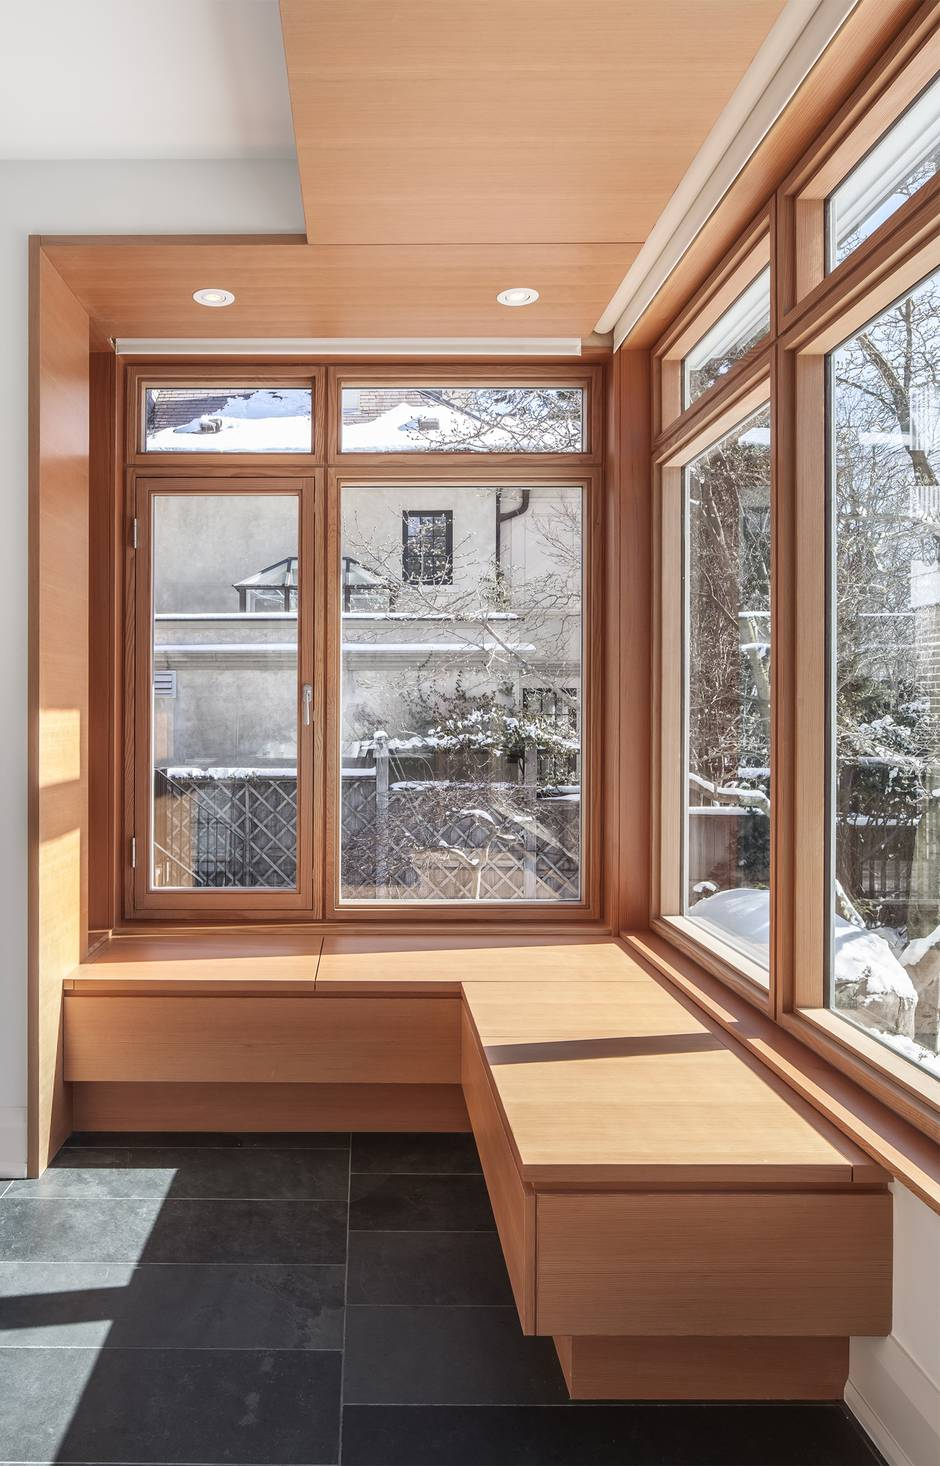 Home of the Week: Rosedale home gets a modern transformation